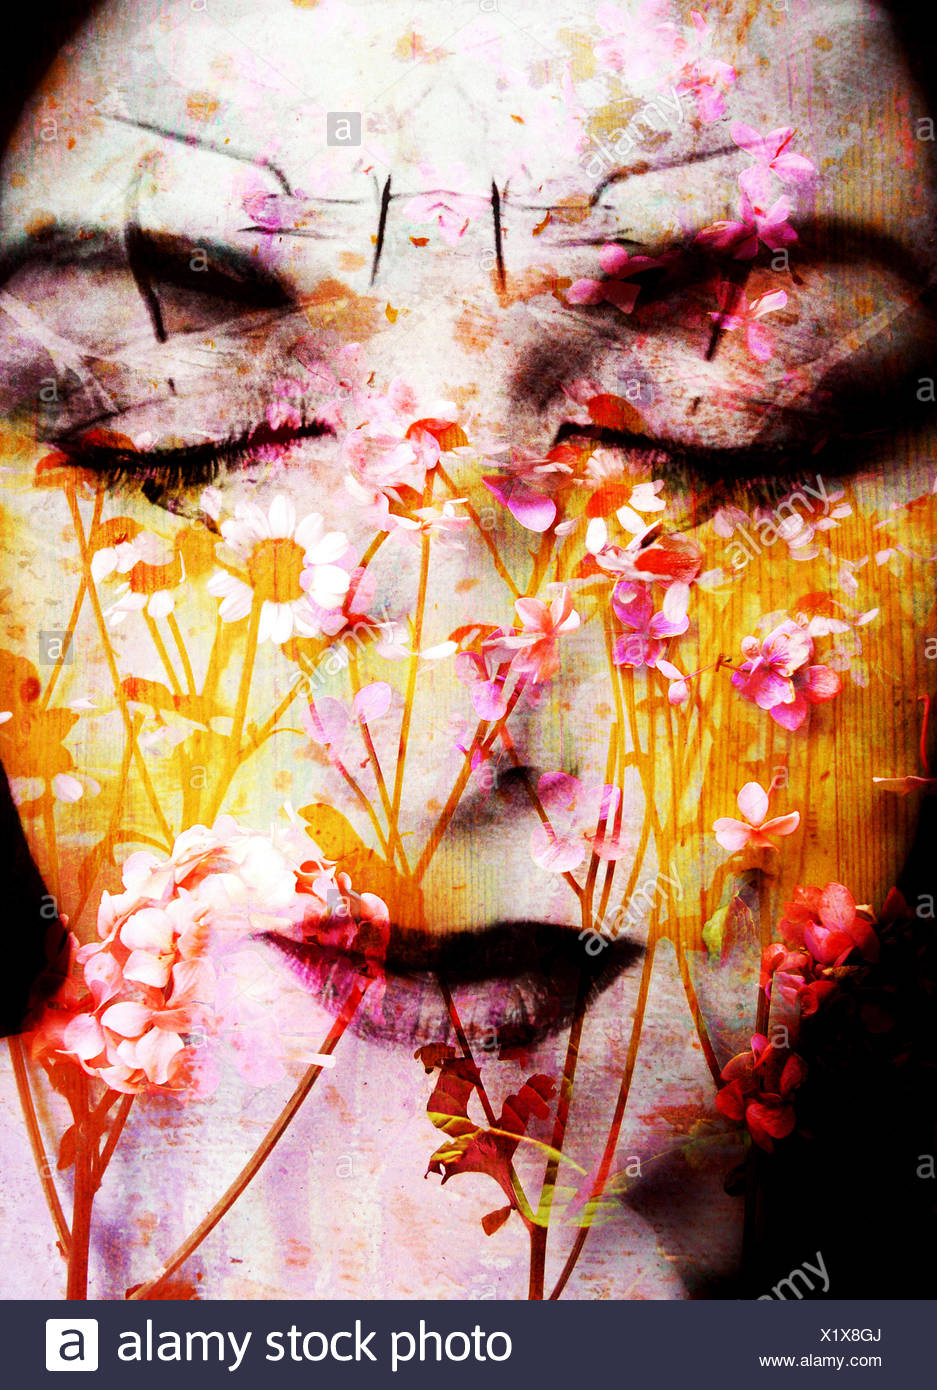 a montage of a portrait of a womans face with flowers and textures Stock Photo